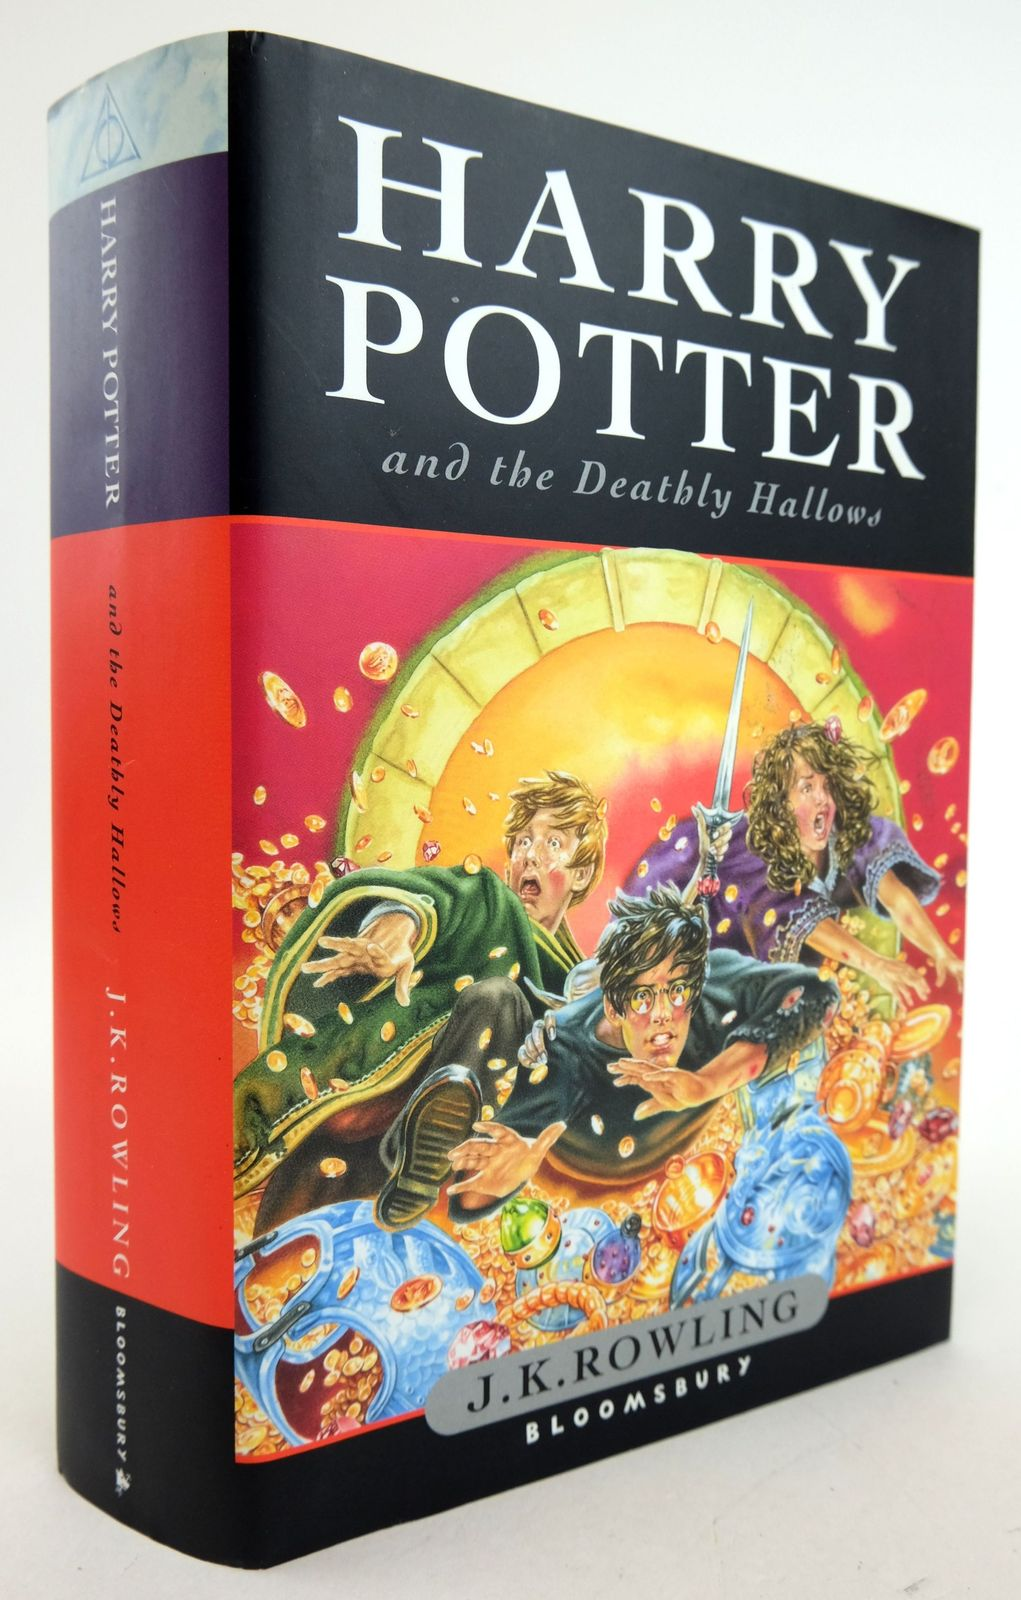 Photo of HARRY POTTER AND THE DEATHLY HALLOWS written by Rowling, J.K. published by Bloomsbury (STOCK CODE: 1819764)  for sale by Stella & Rose's Books